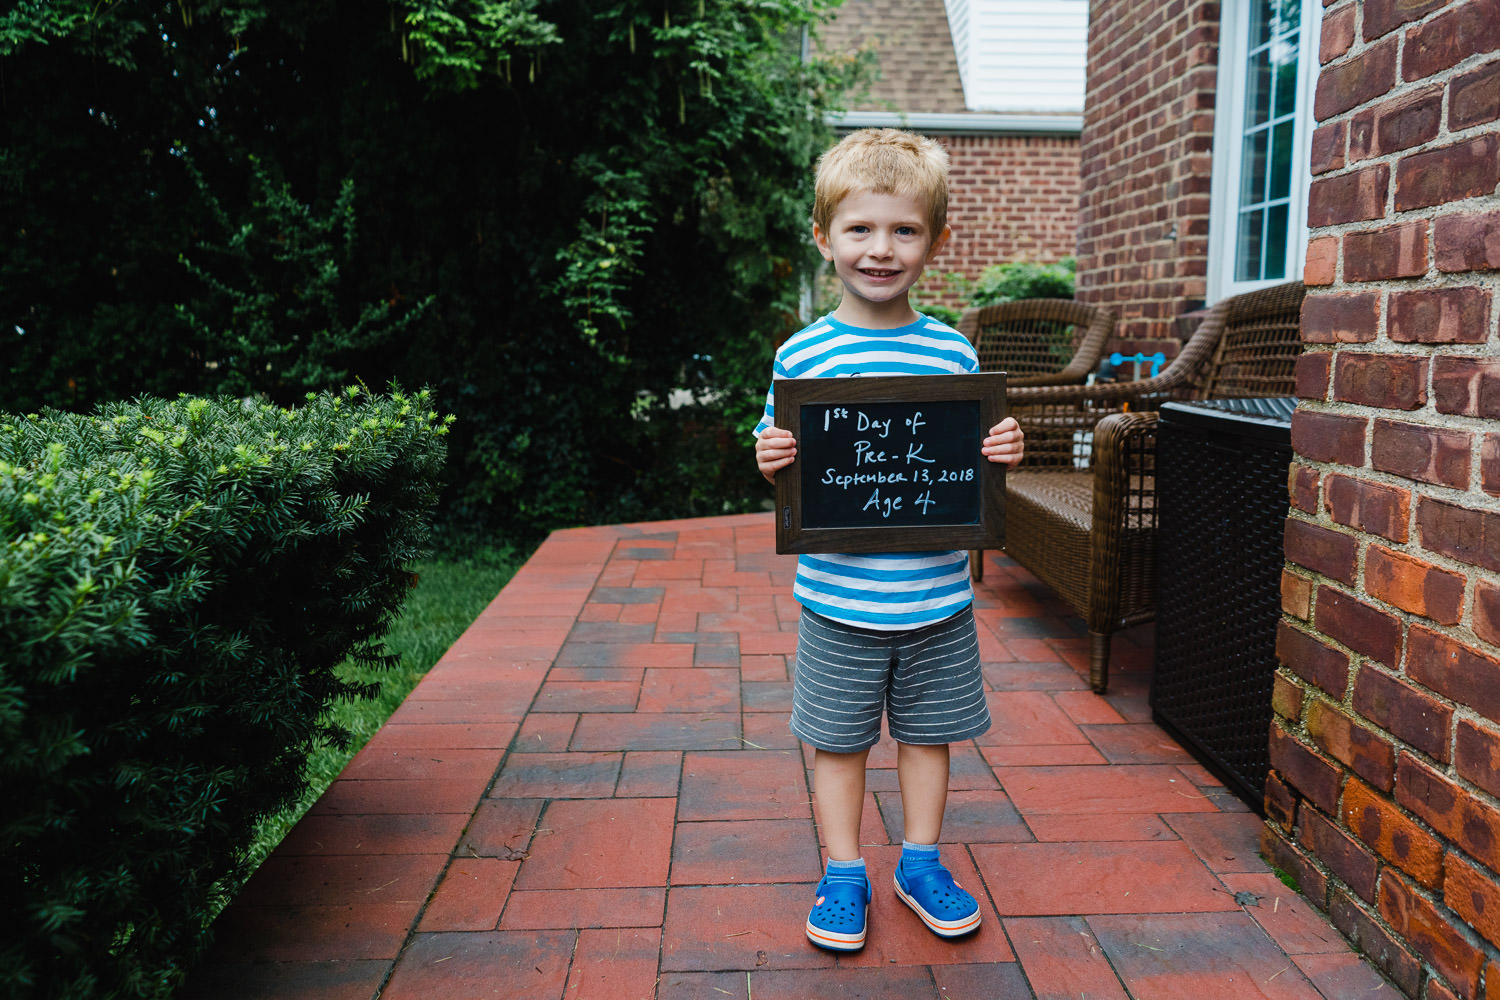 A little boy on the first day of school.